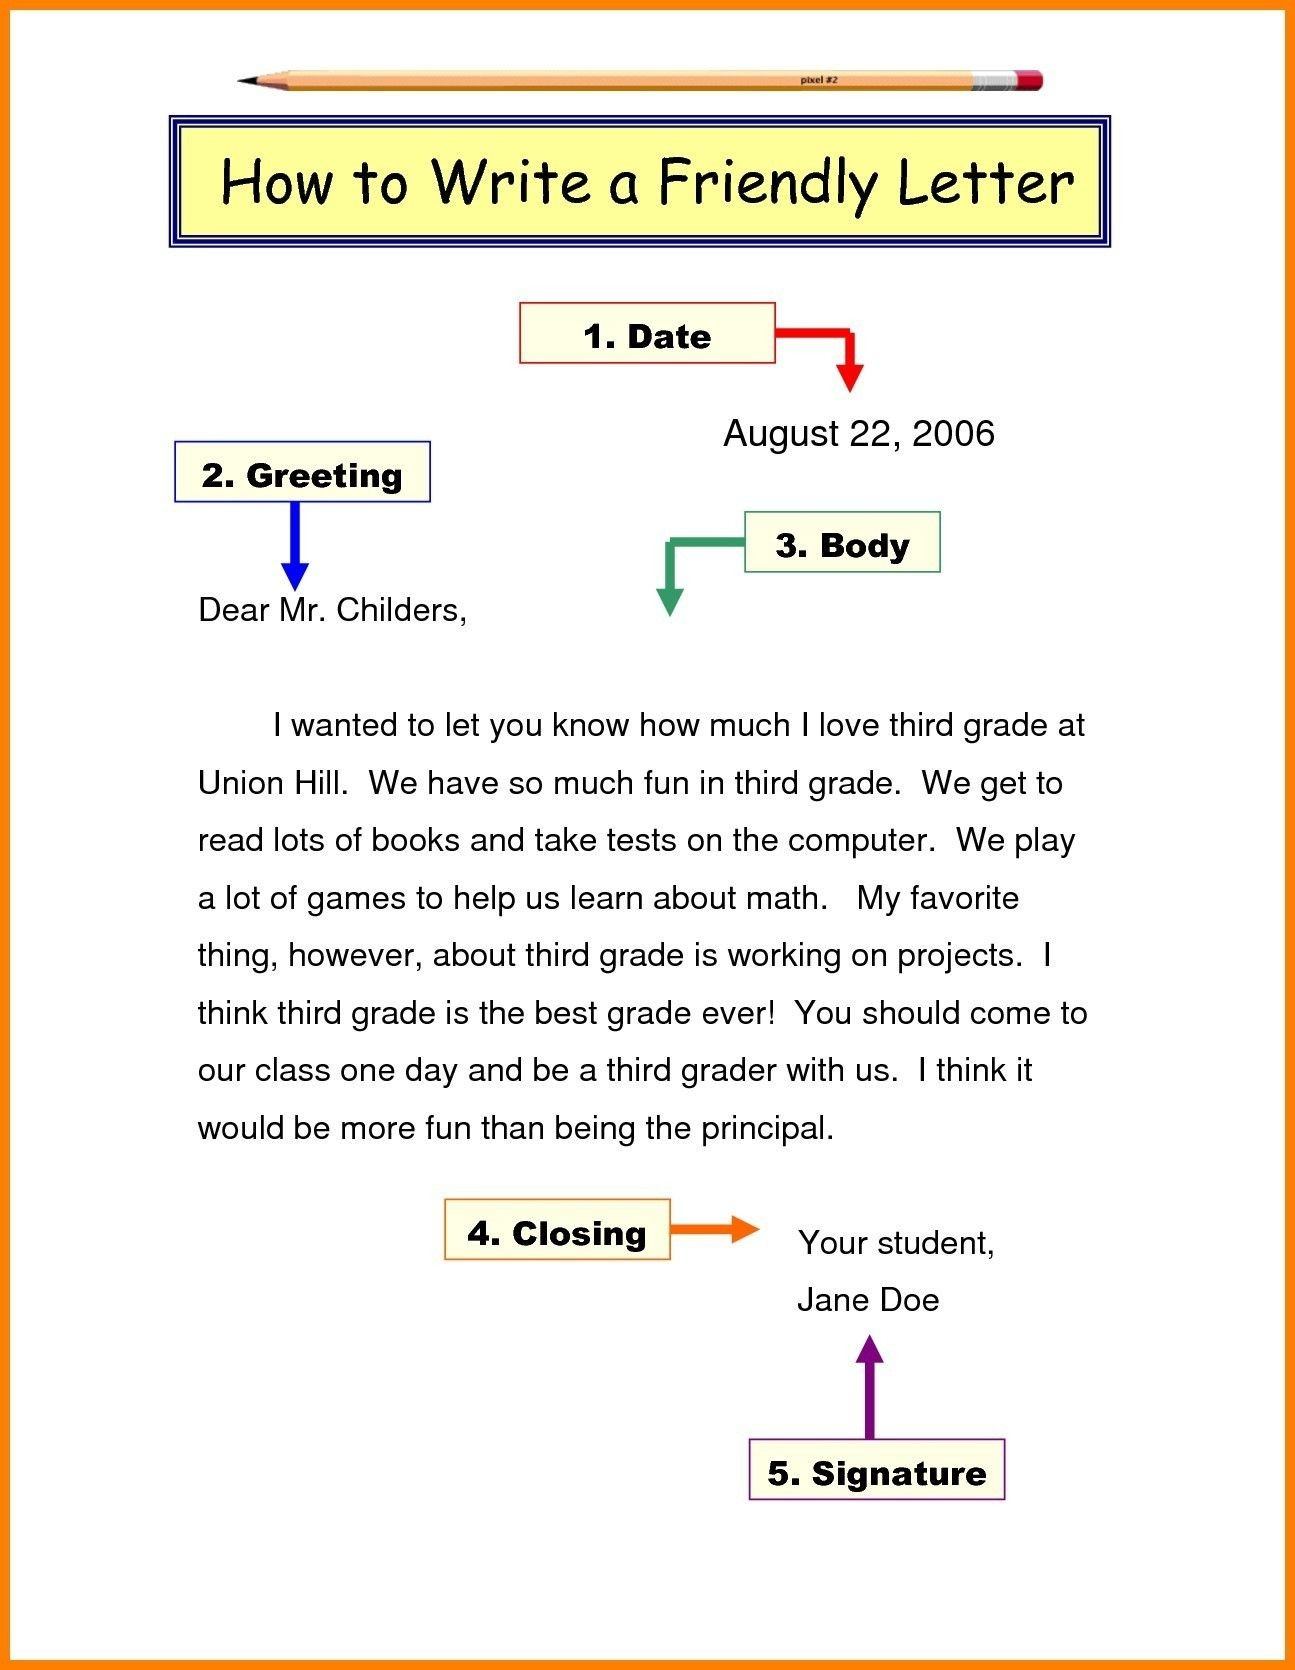 year 3 letter examples  Friendly Letter format Grade 3 Best Letter Writing format ..